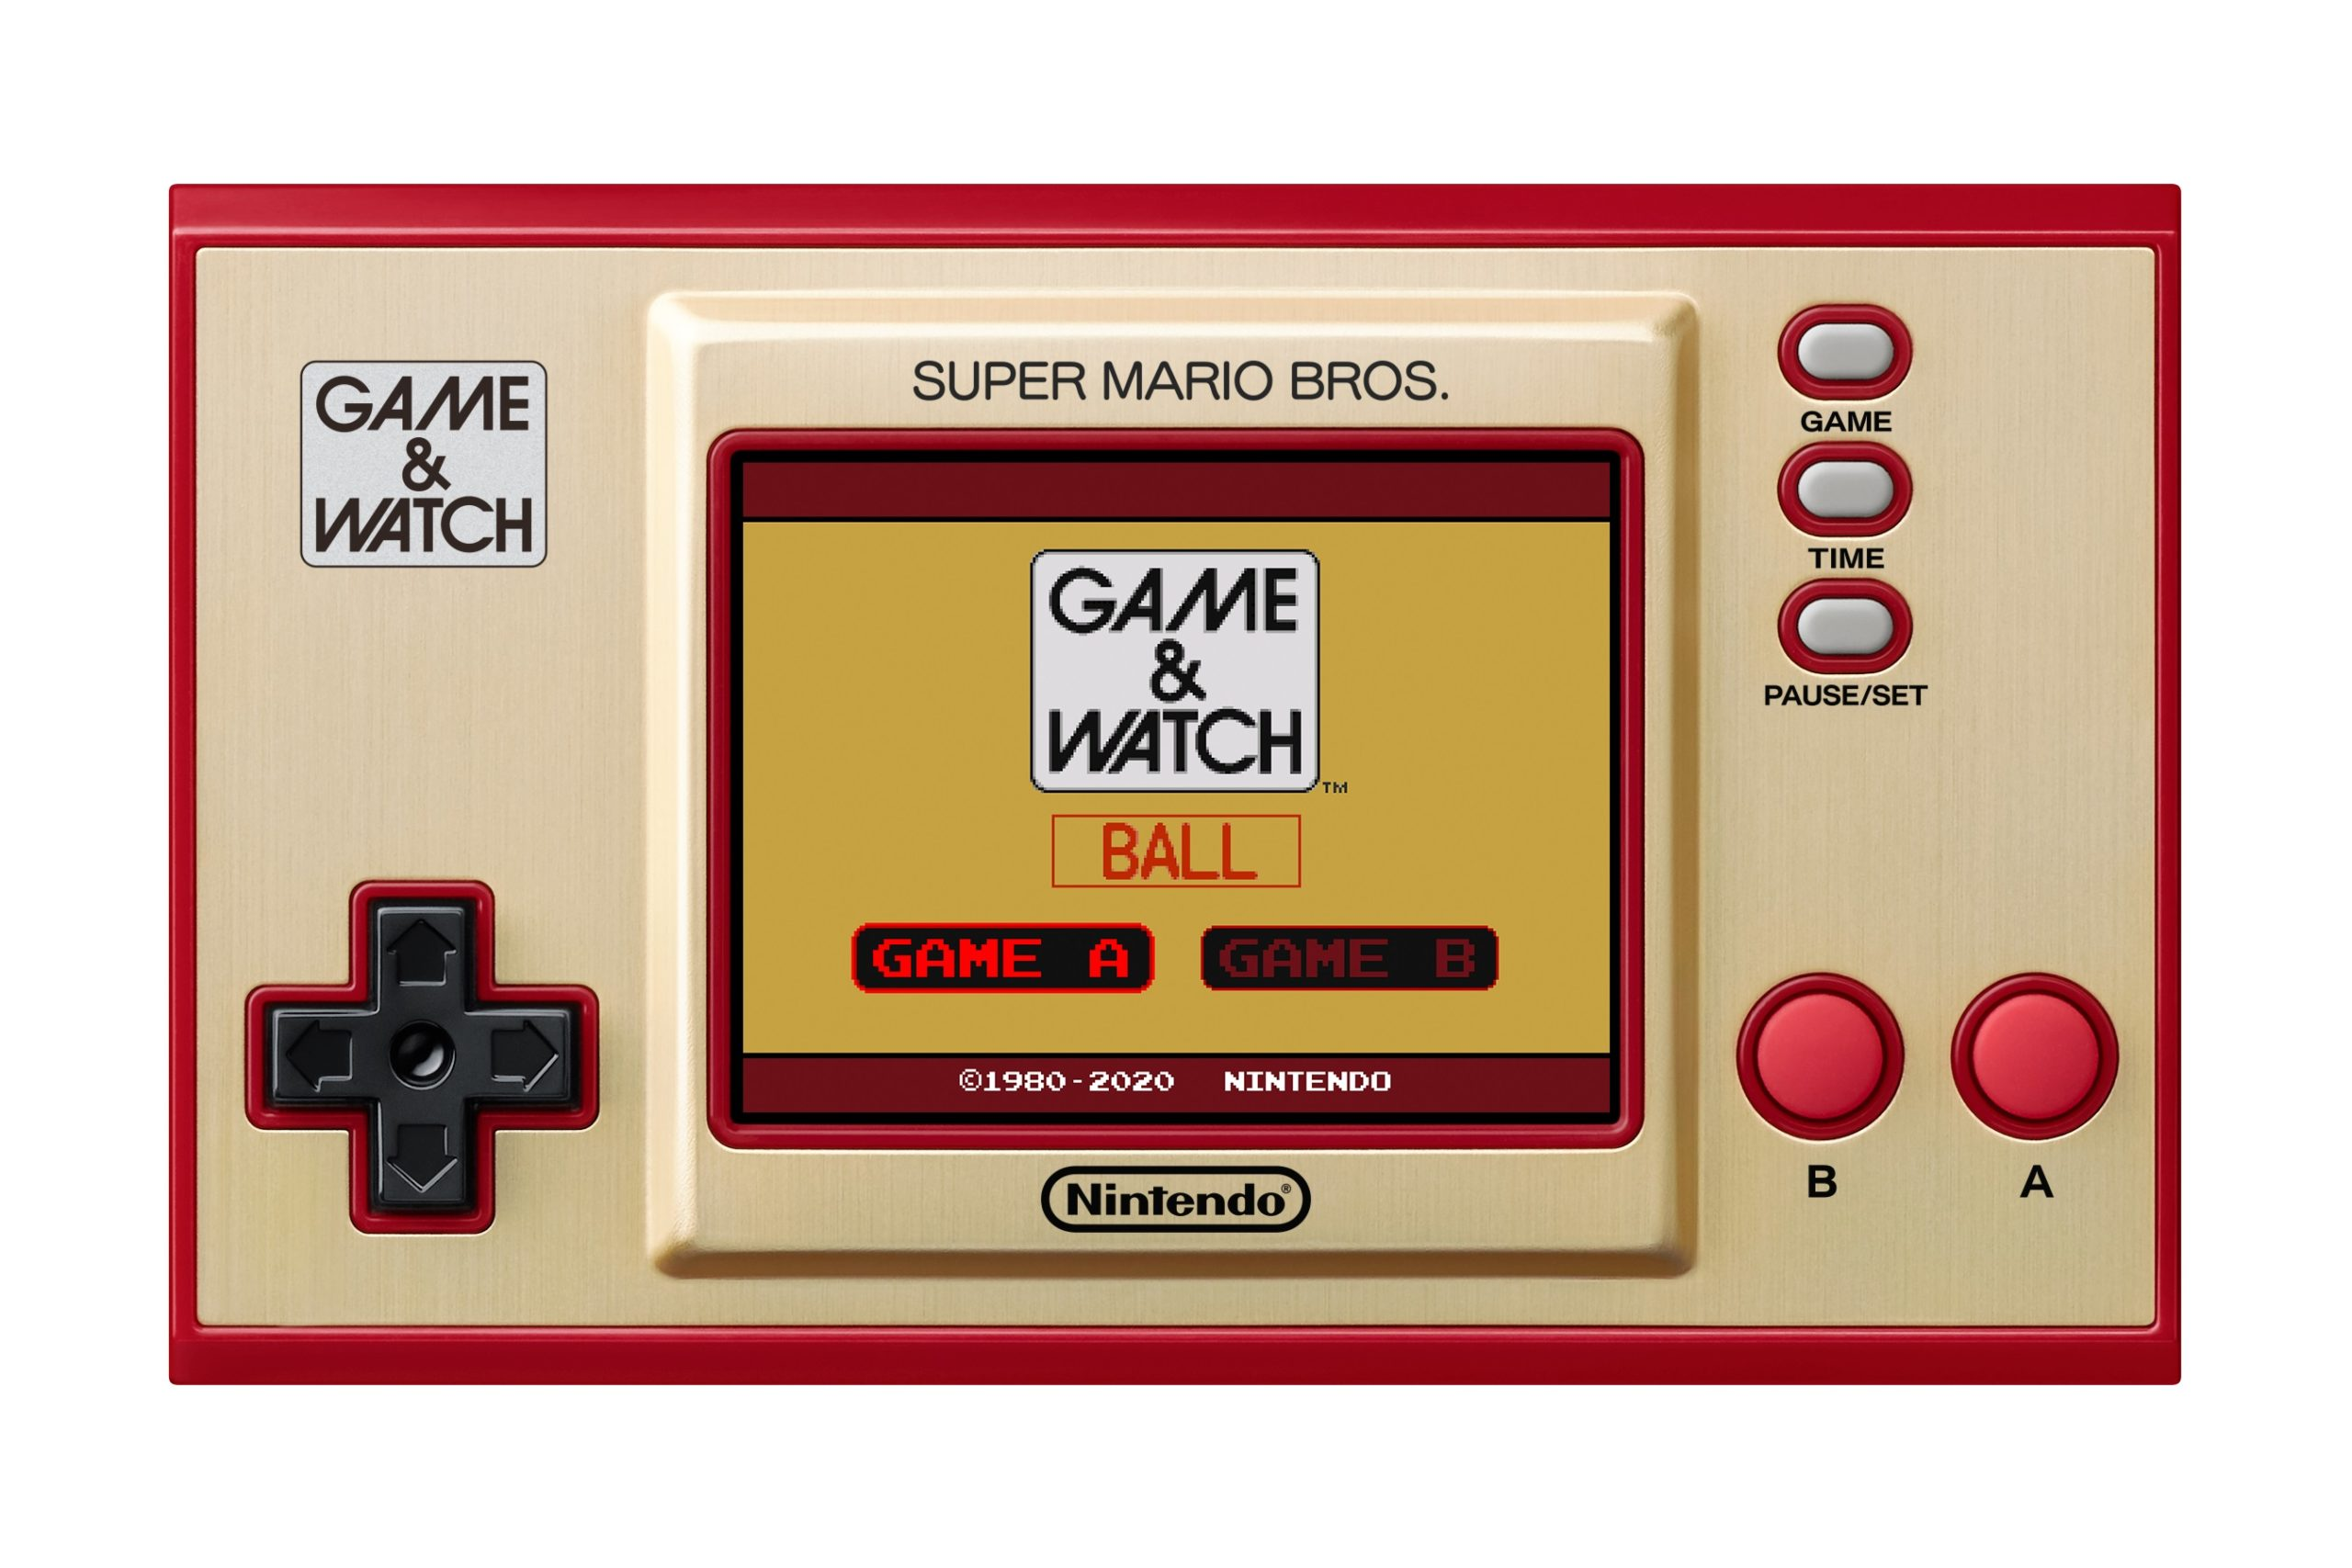 Game & Watch: Ball Game Selection